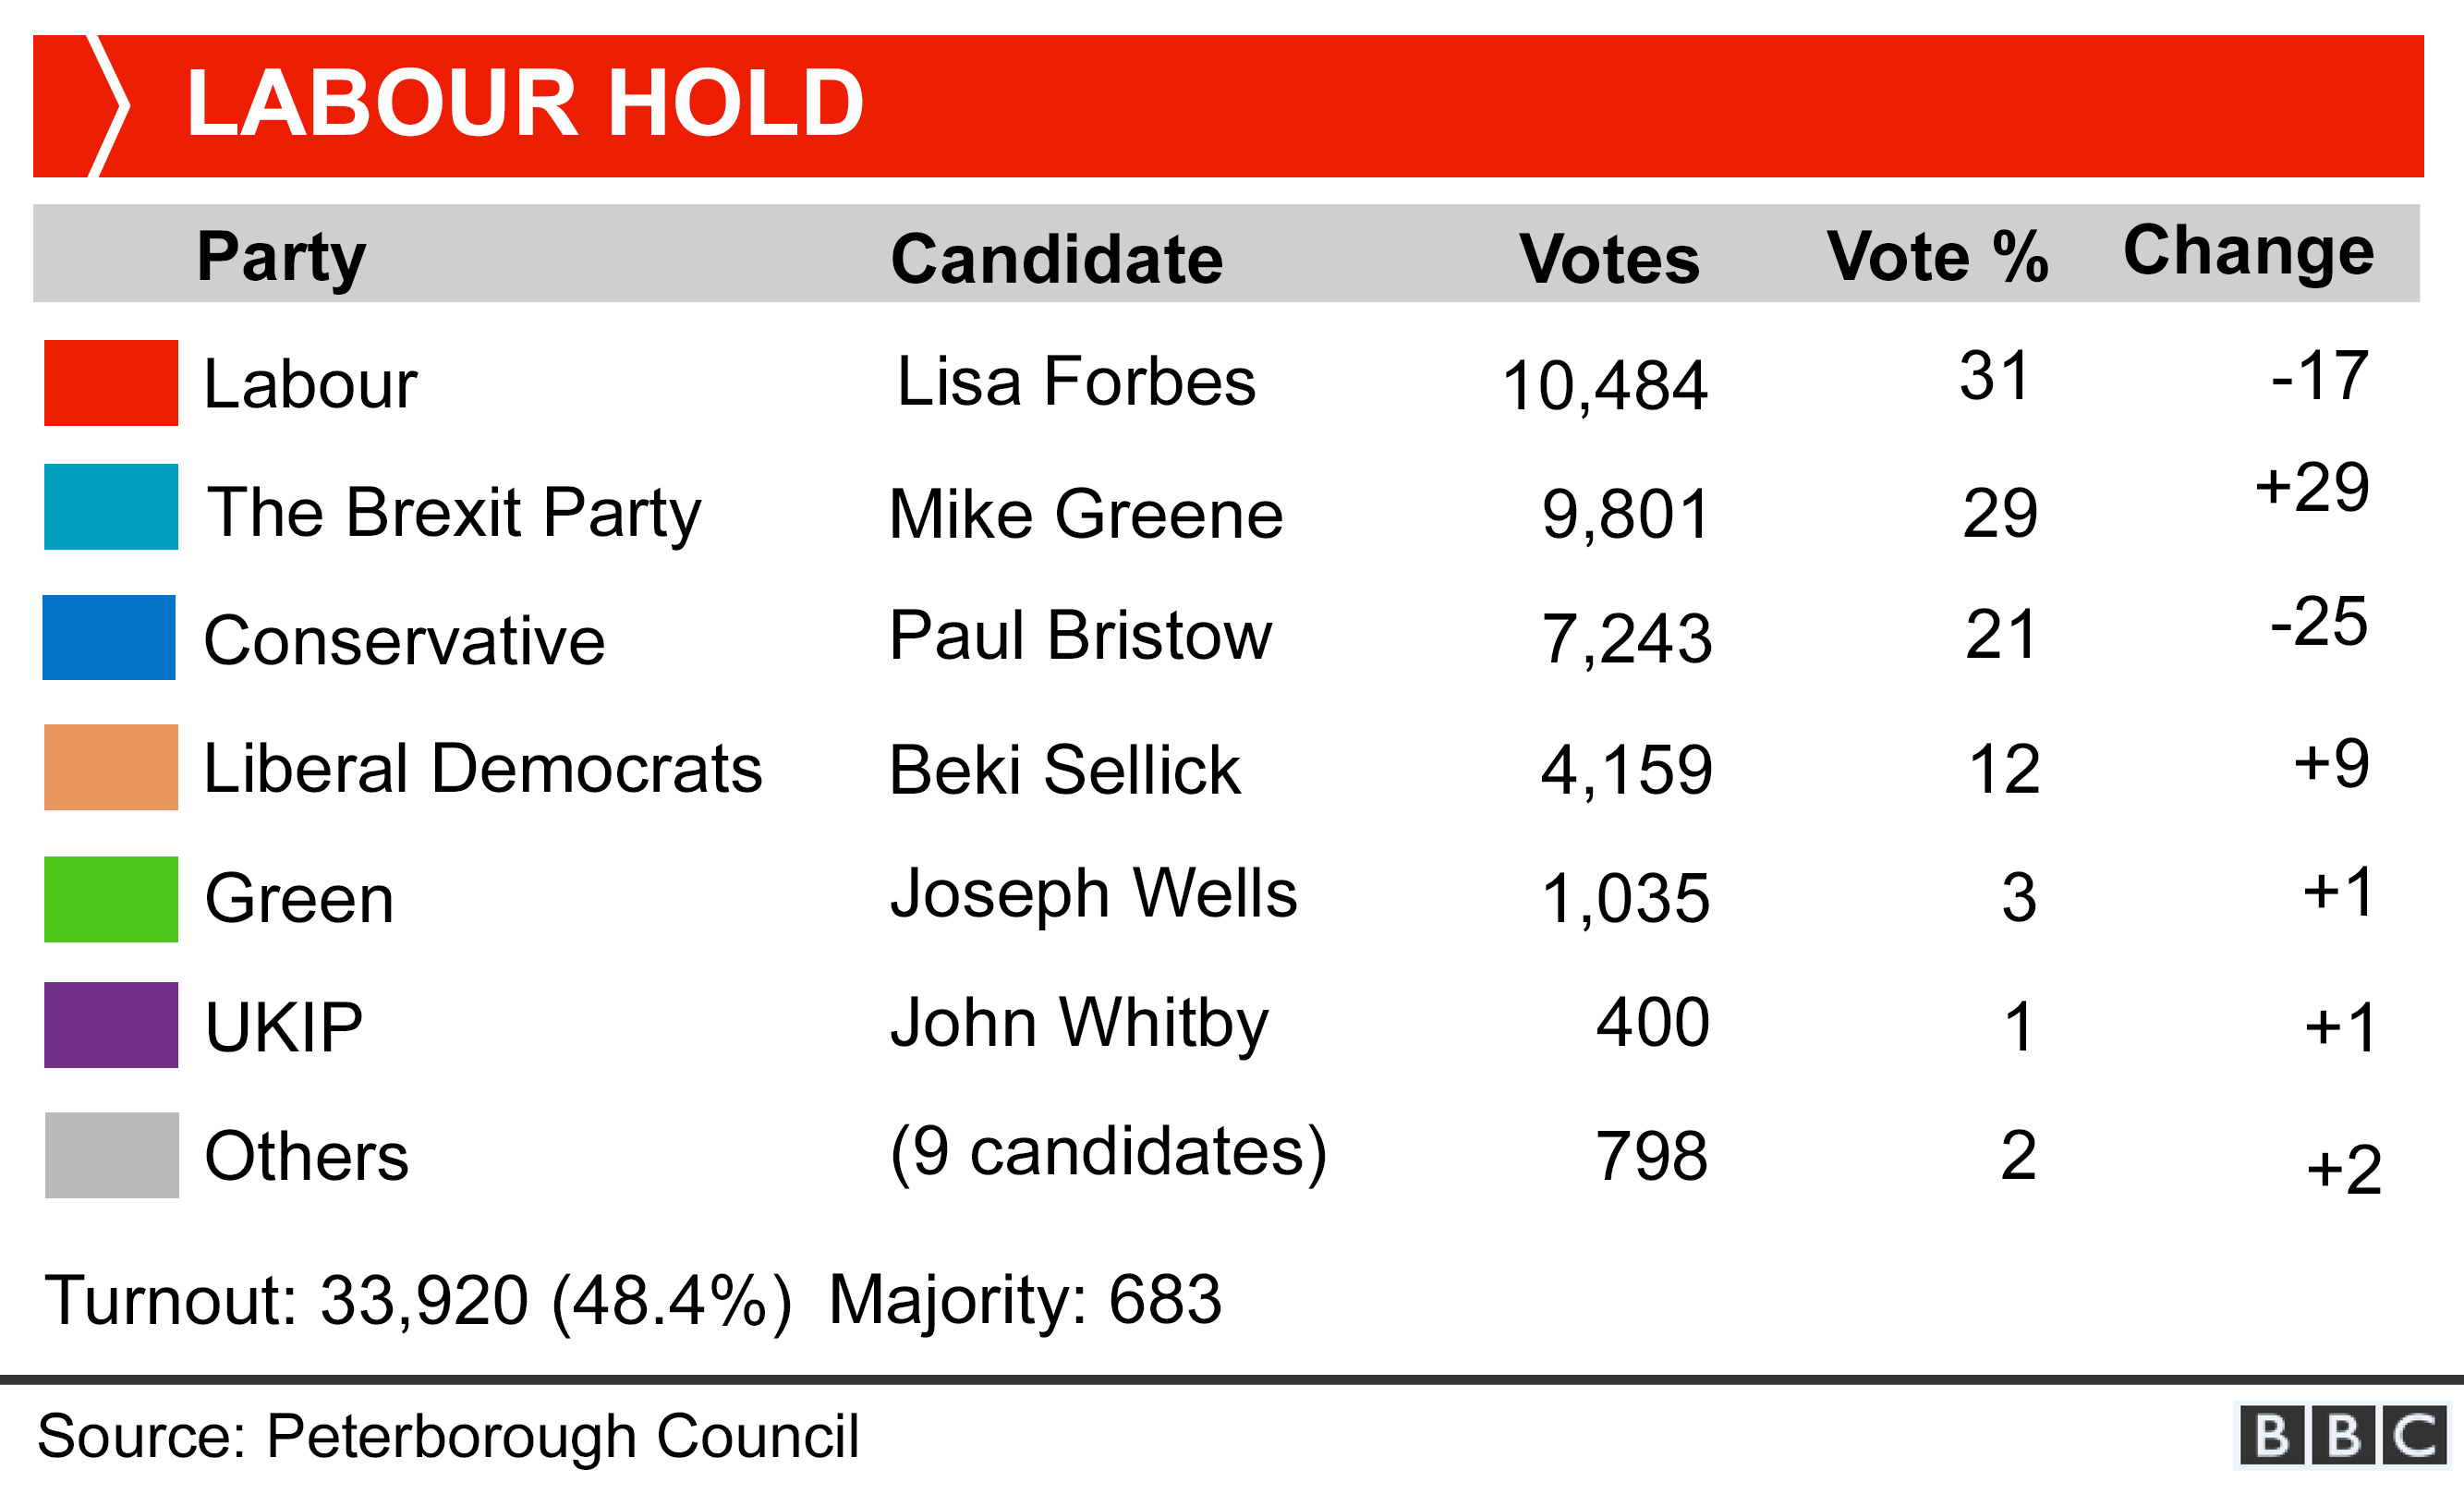 Peterborough by-election result. Labour holds with 10,484 votes (31% -17 percentage points). Brexit Party 9,801 votes (29% +29), Conservatives 7,243 votes (21% -25). Liberal Democrats 4,159 votes (12% +9), Green 1,035 votes (3% +1) Turnout: 48%.